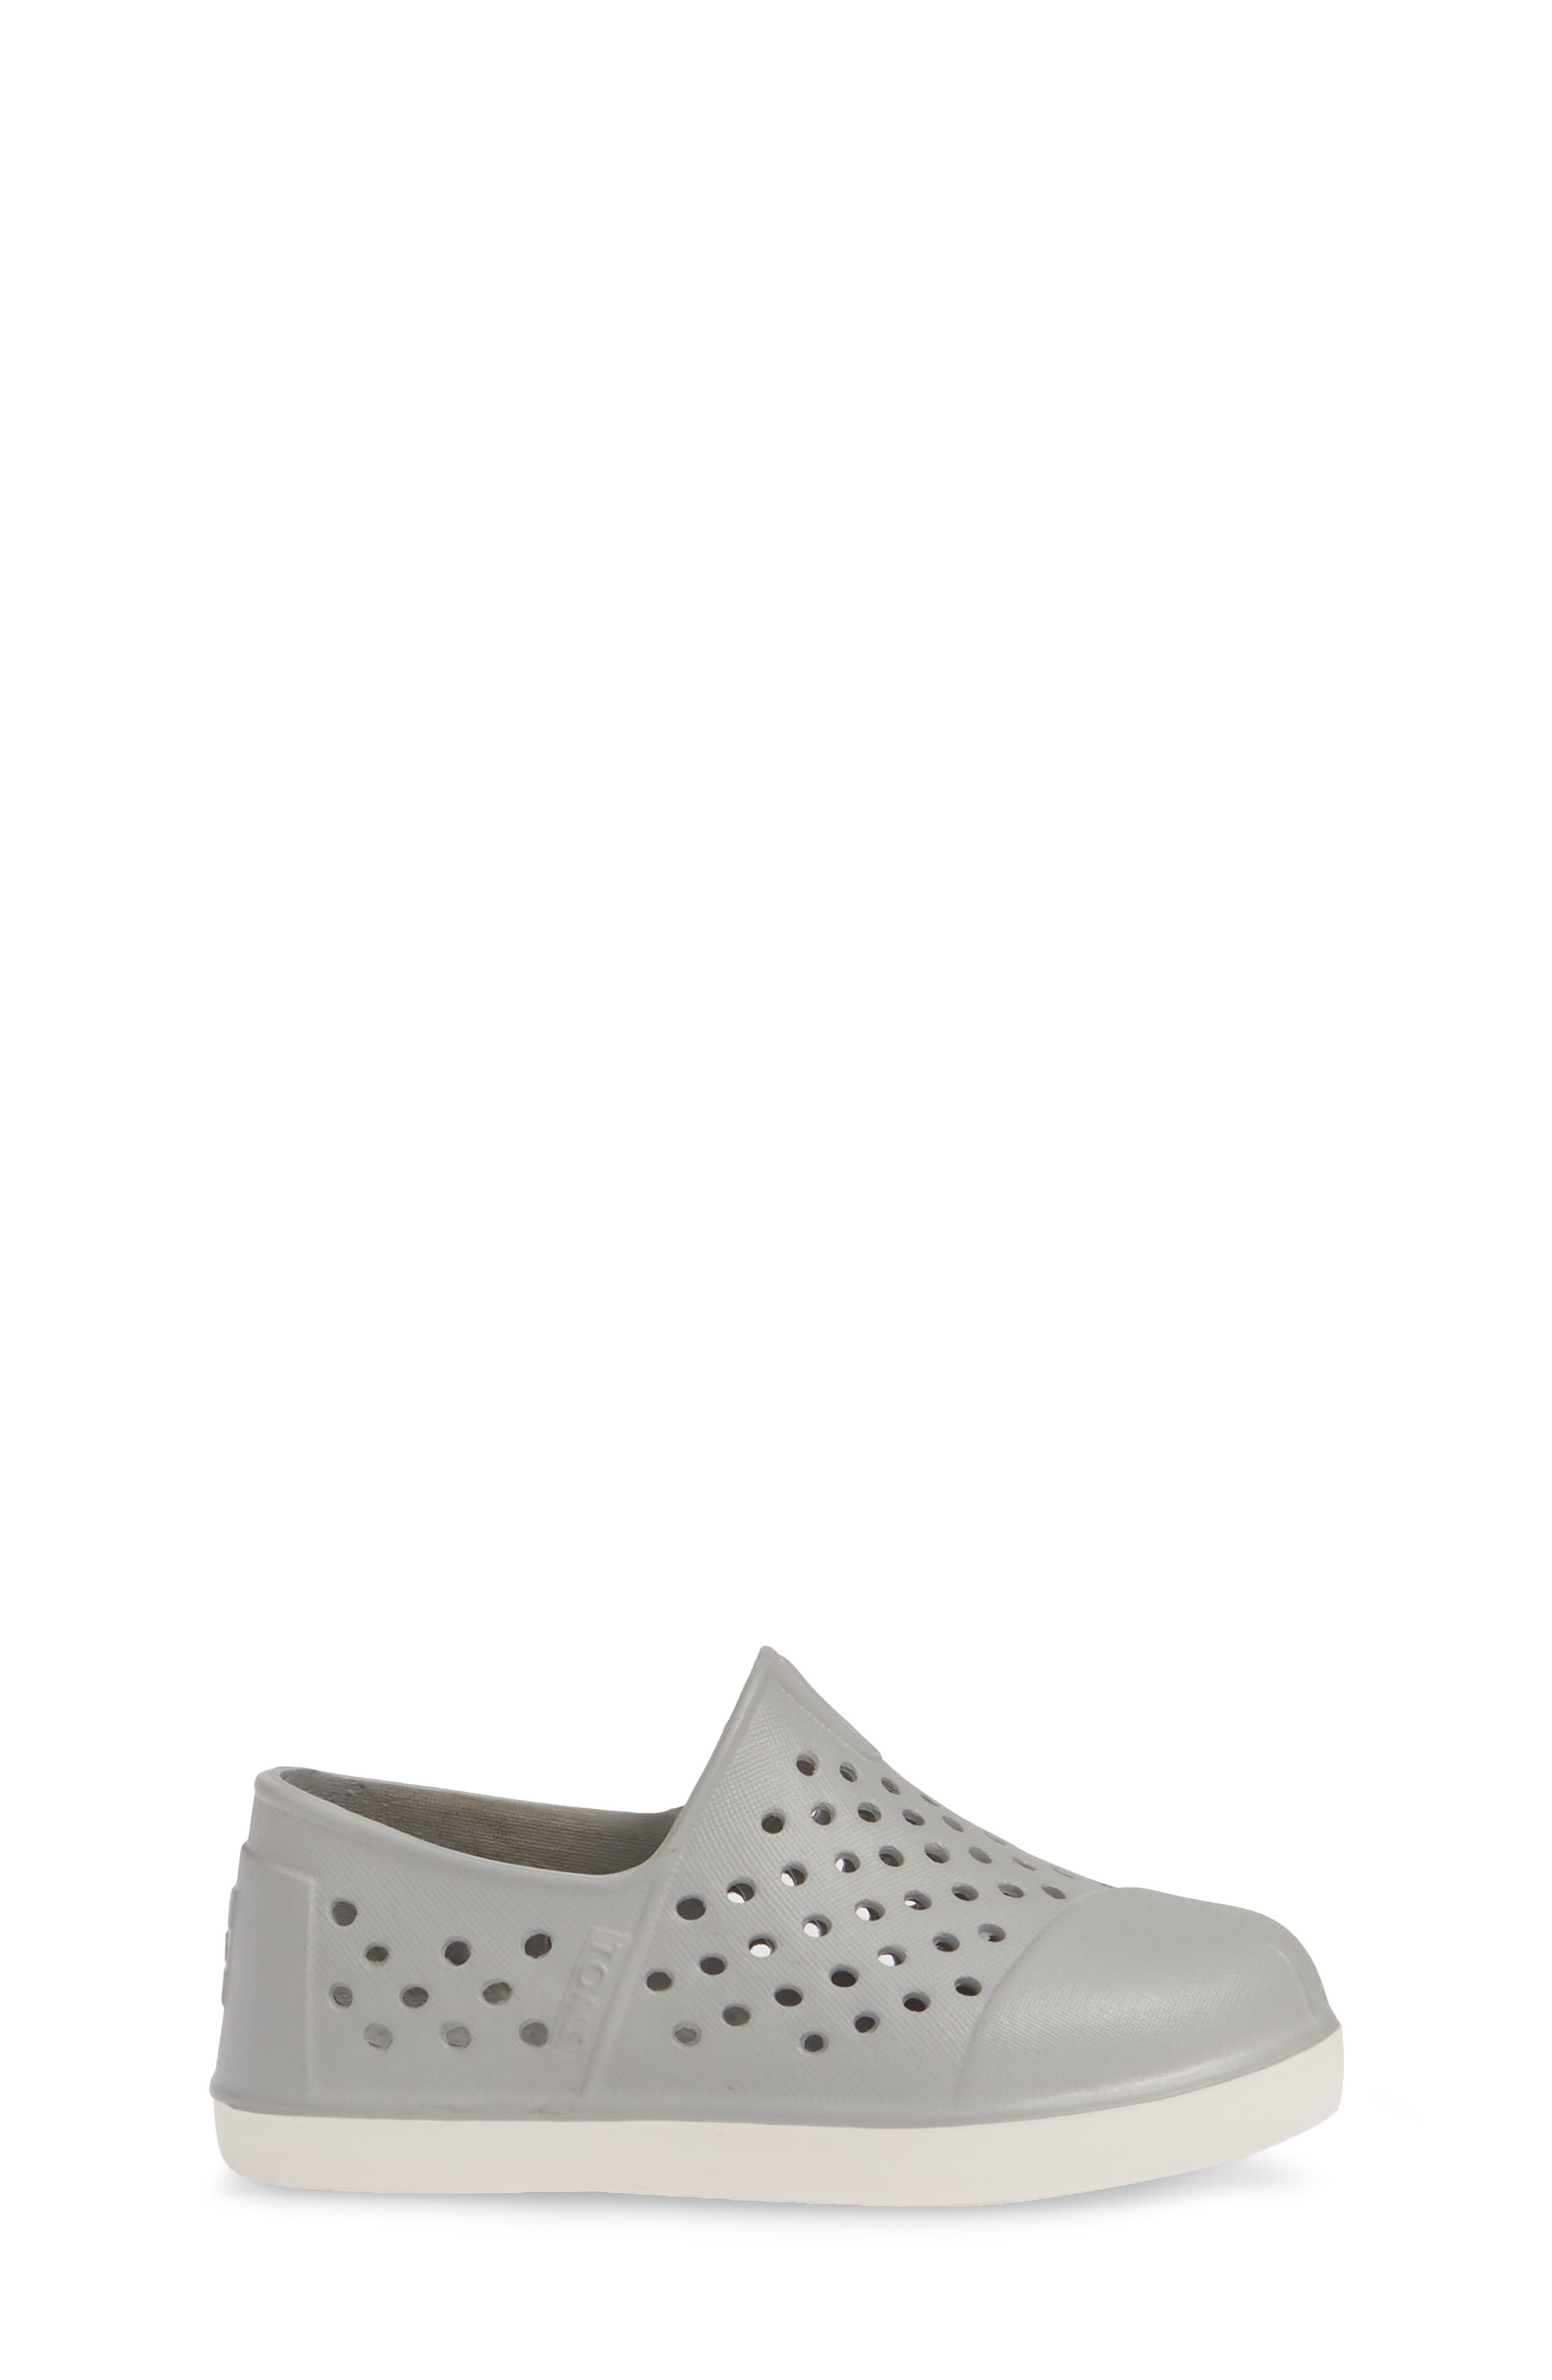 TOMS, 'Romper' Slip-On, Alternate thumbnail 3, color, GREY